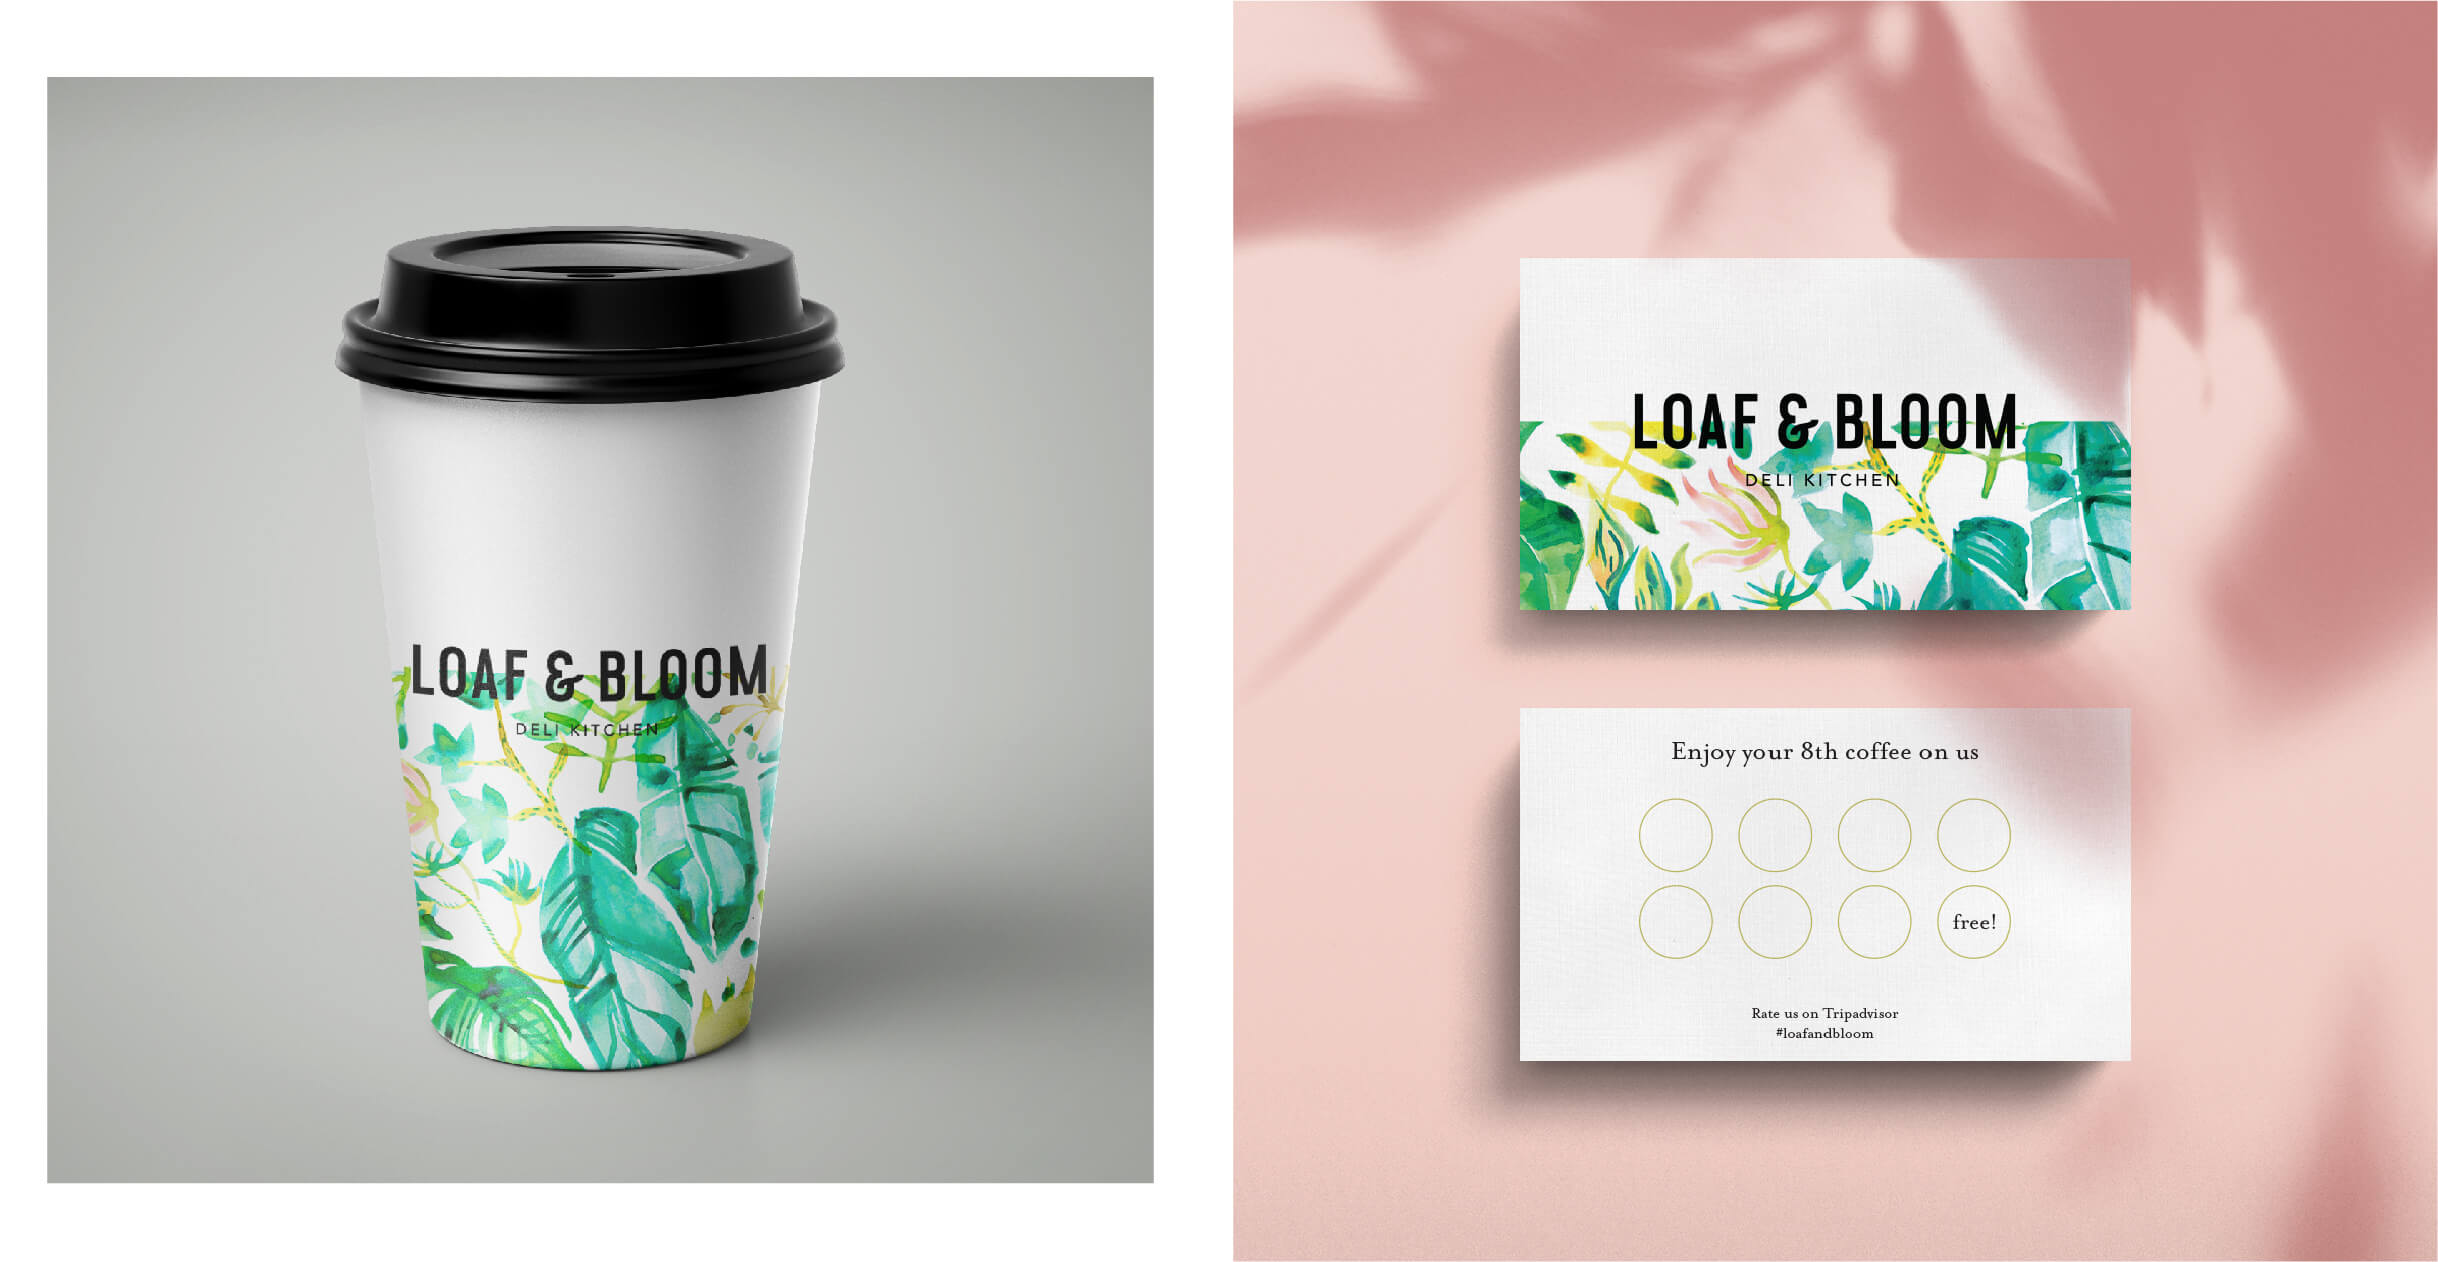 Debenhams Loaf & Bloom coffee cup and loyalty card